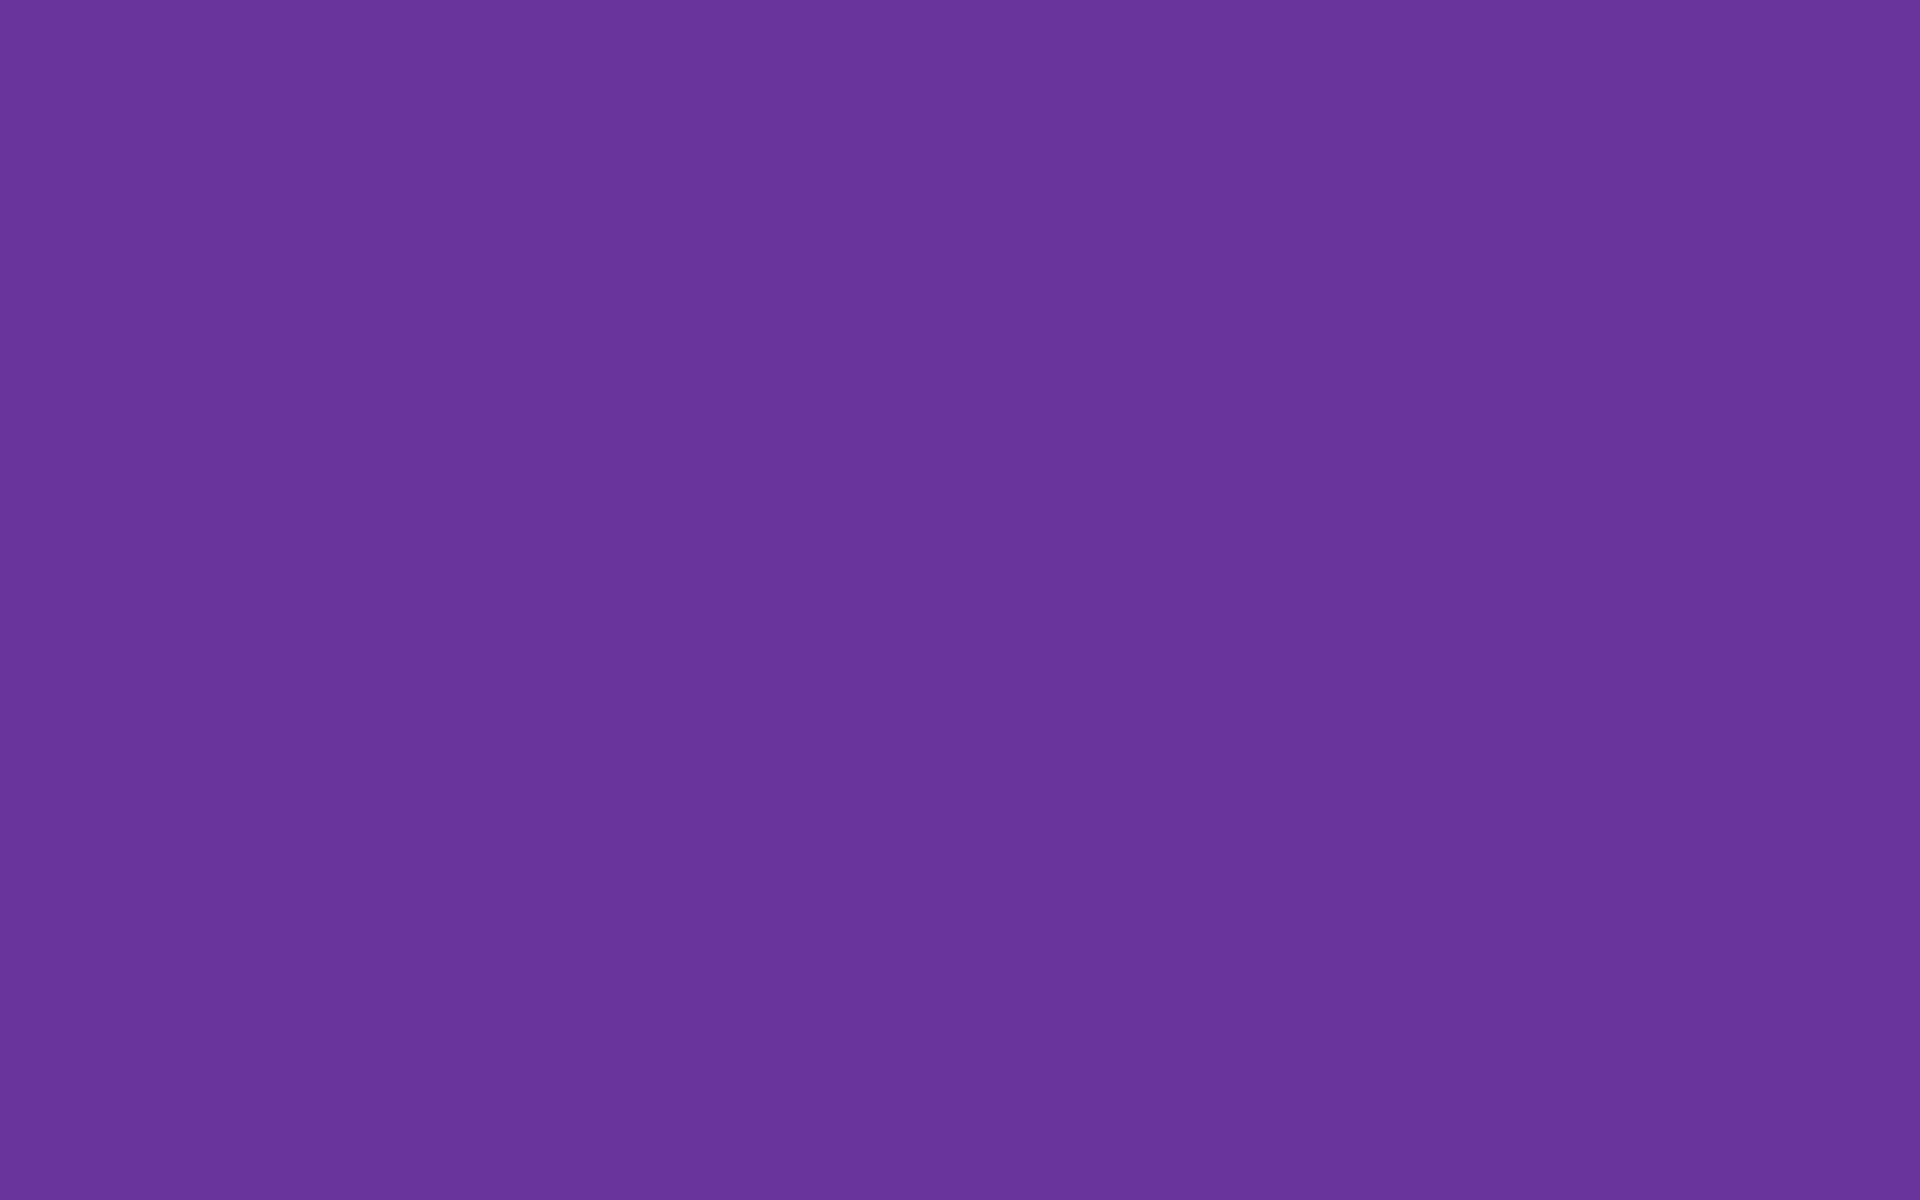 1920x1200 Purple Heart Solid Color Background